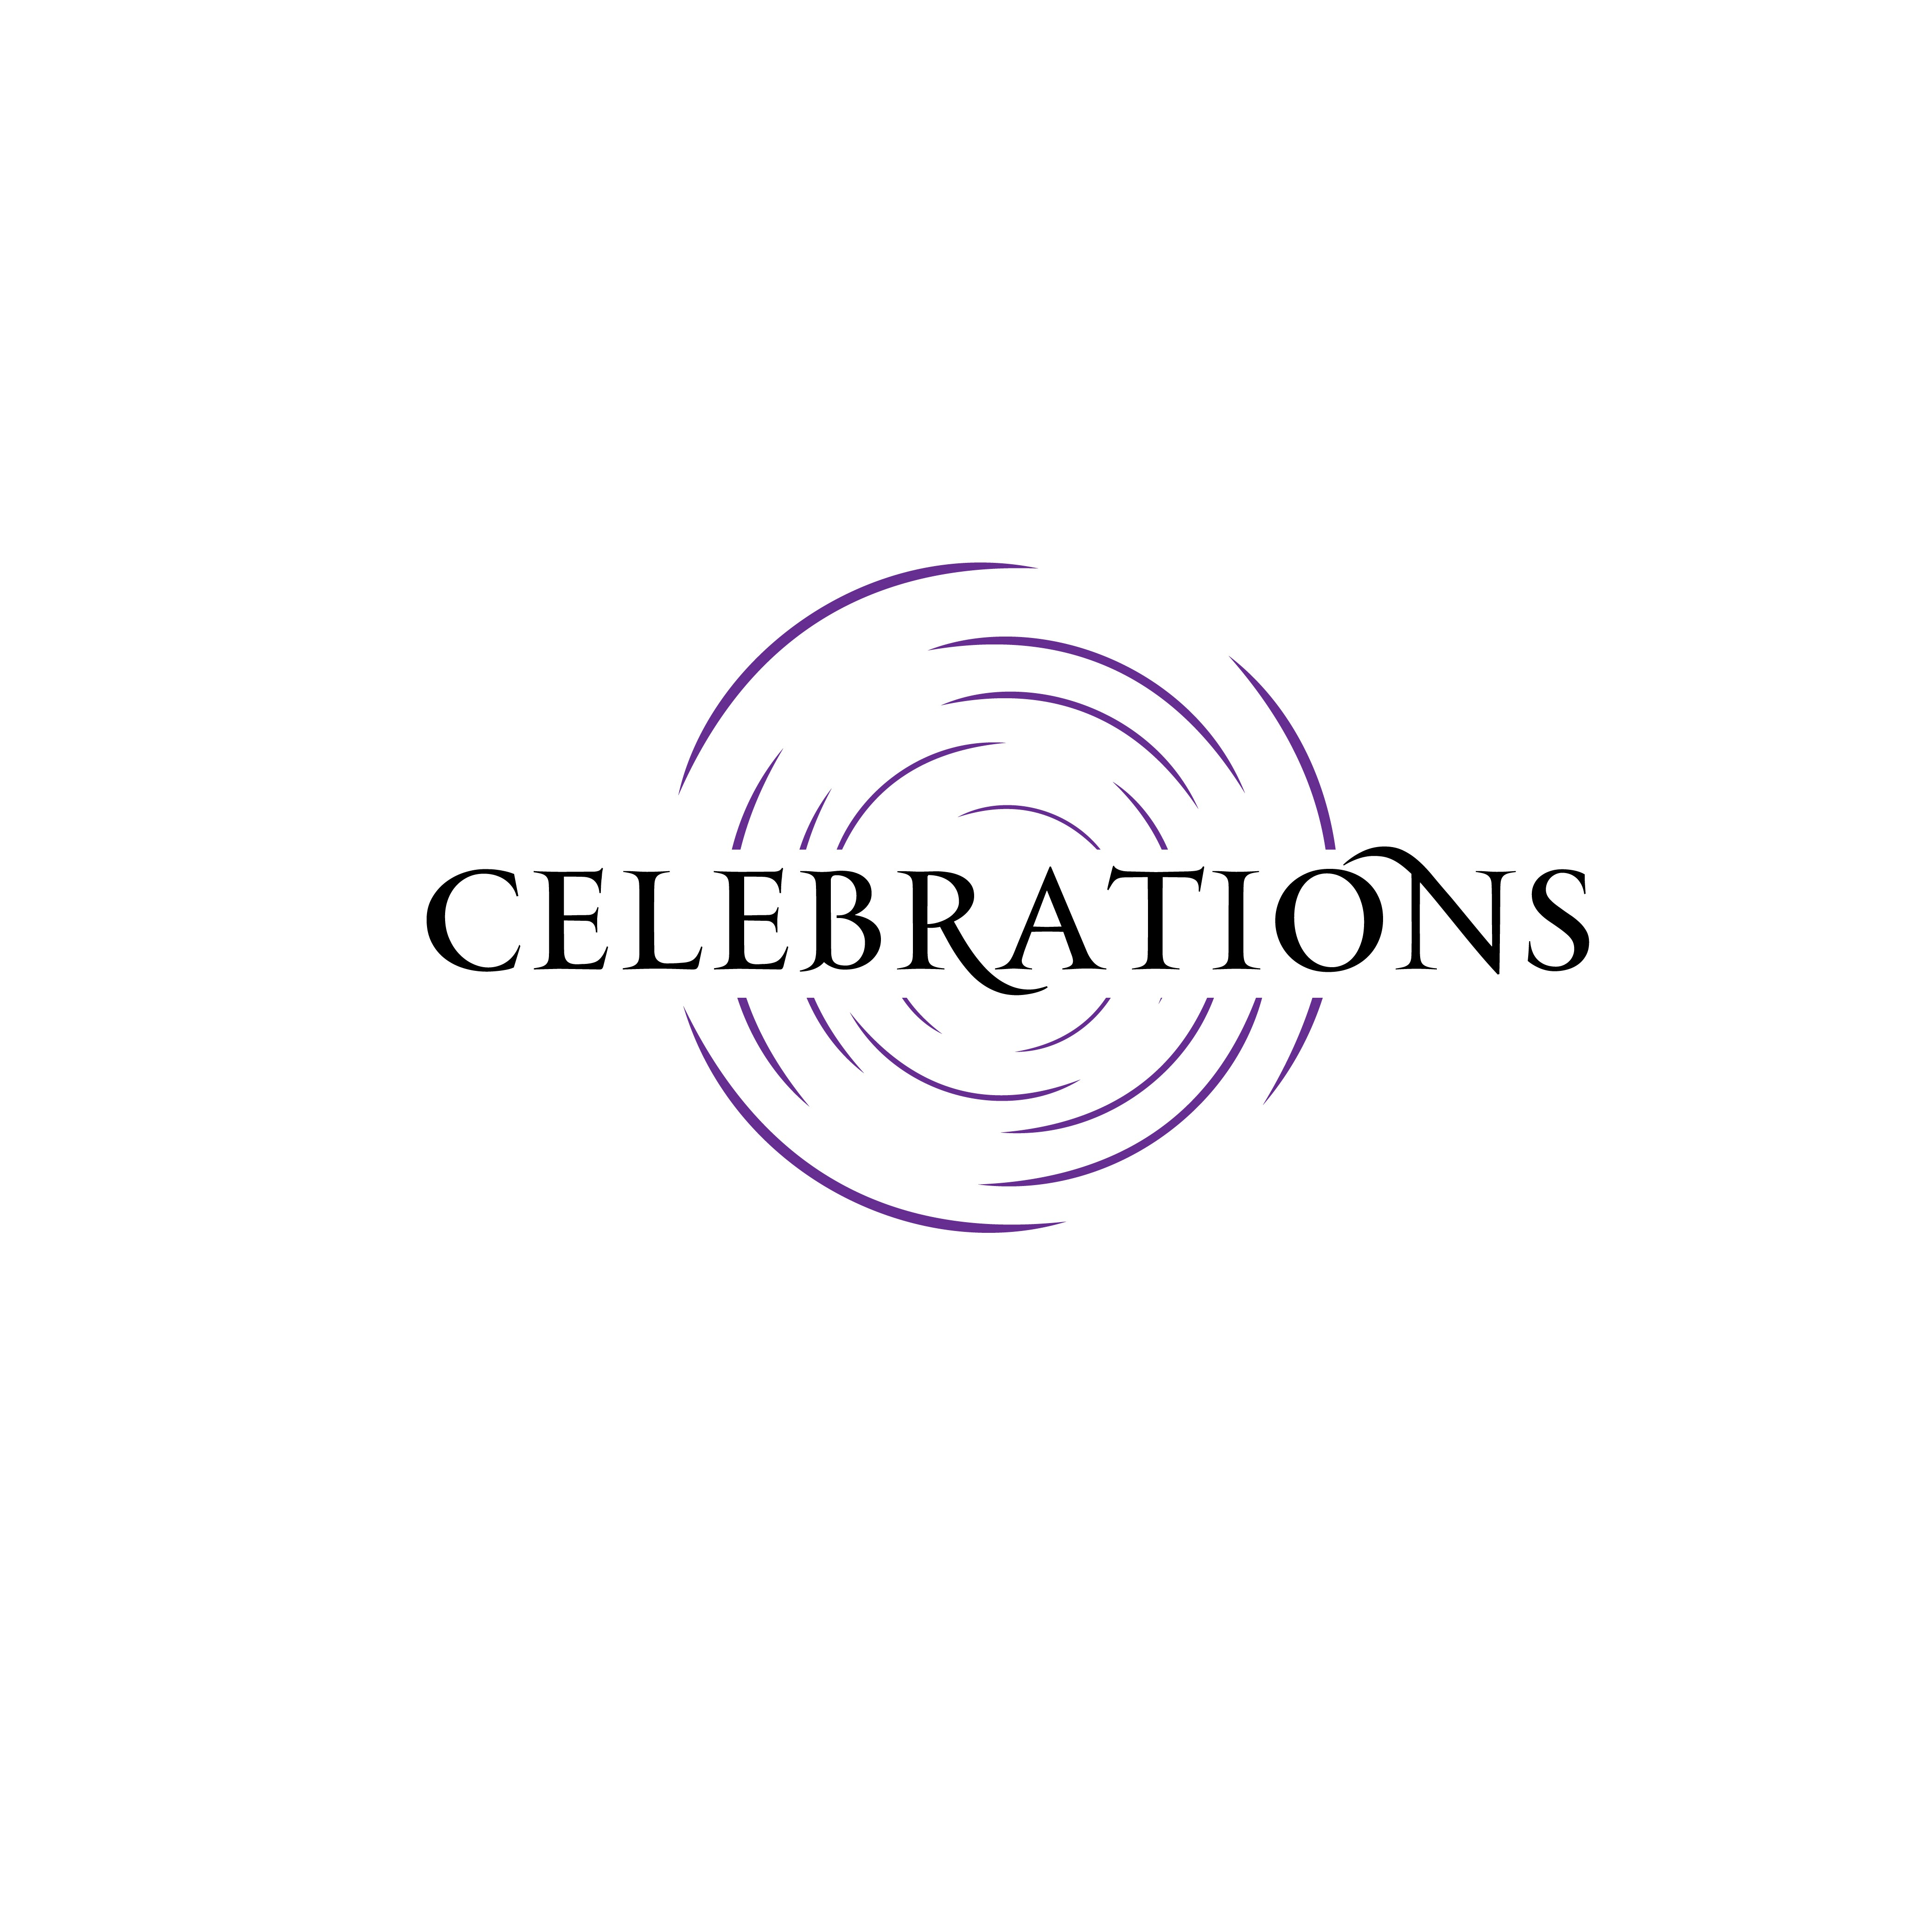 need a logo to help create memories of our life at Celebrations event center